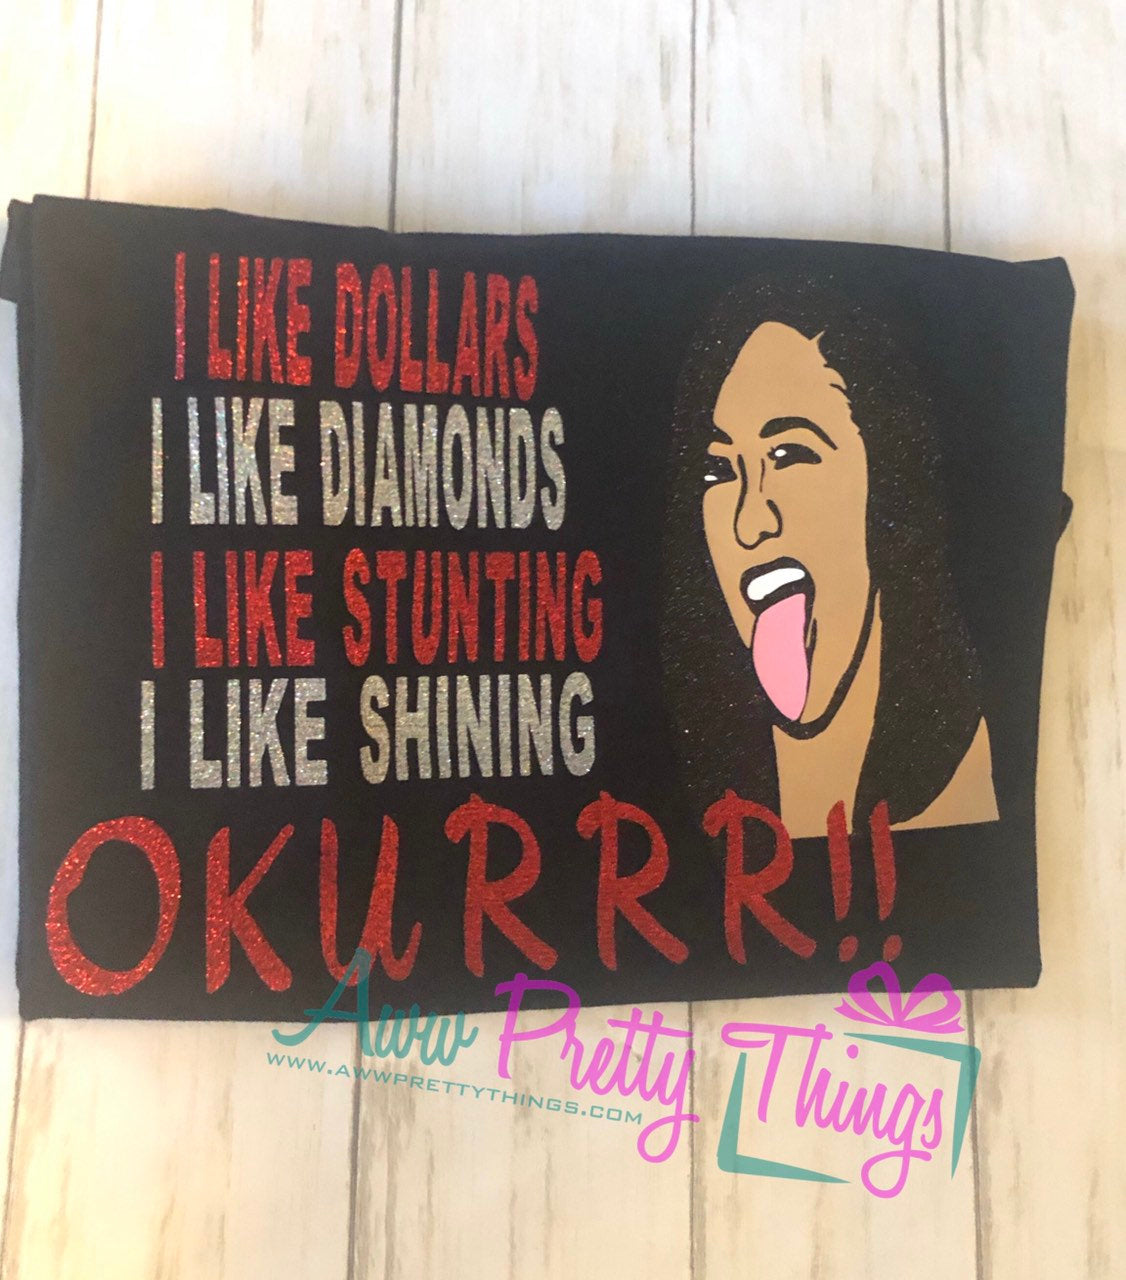 Cardi B Inspired Shirt I Like It Like That Cardi B I Like Dollars I Like Diamonds I Like Stunting I Like Shining Melanin Shirt